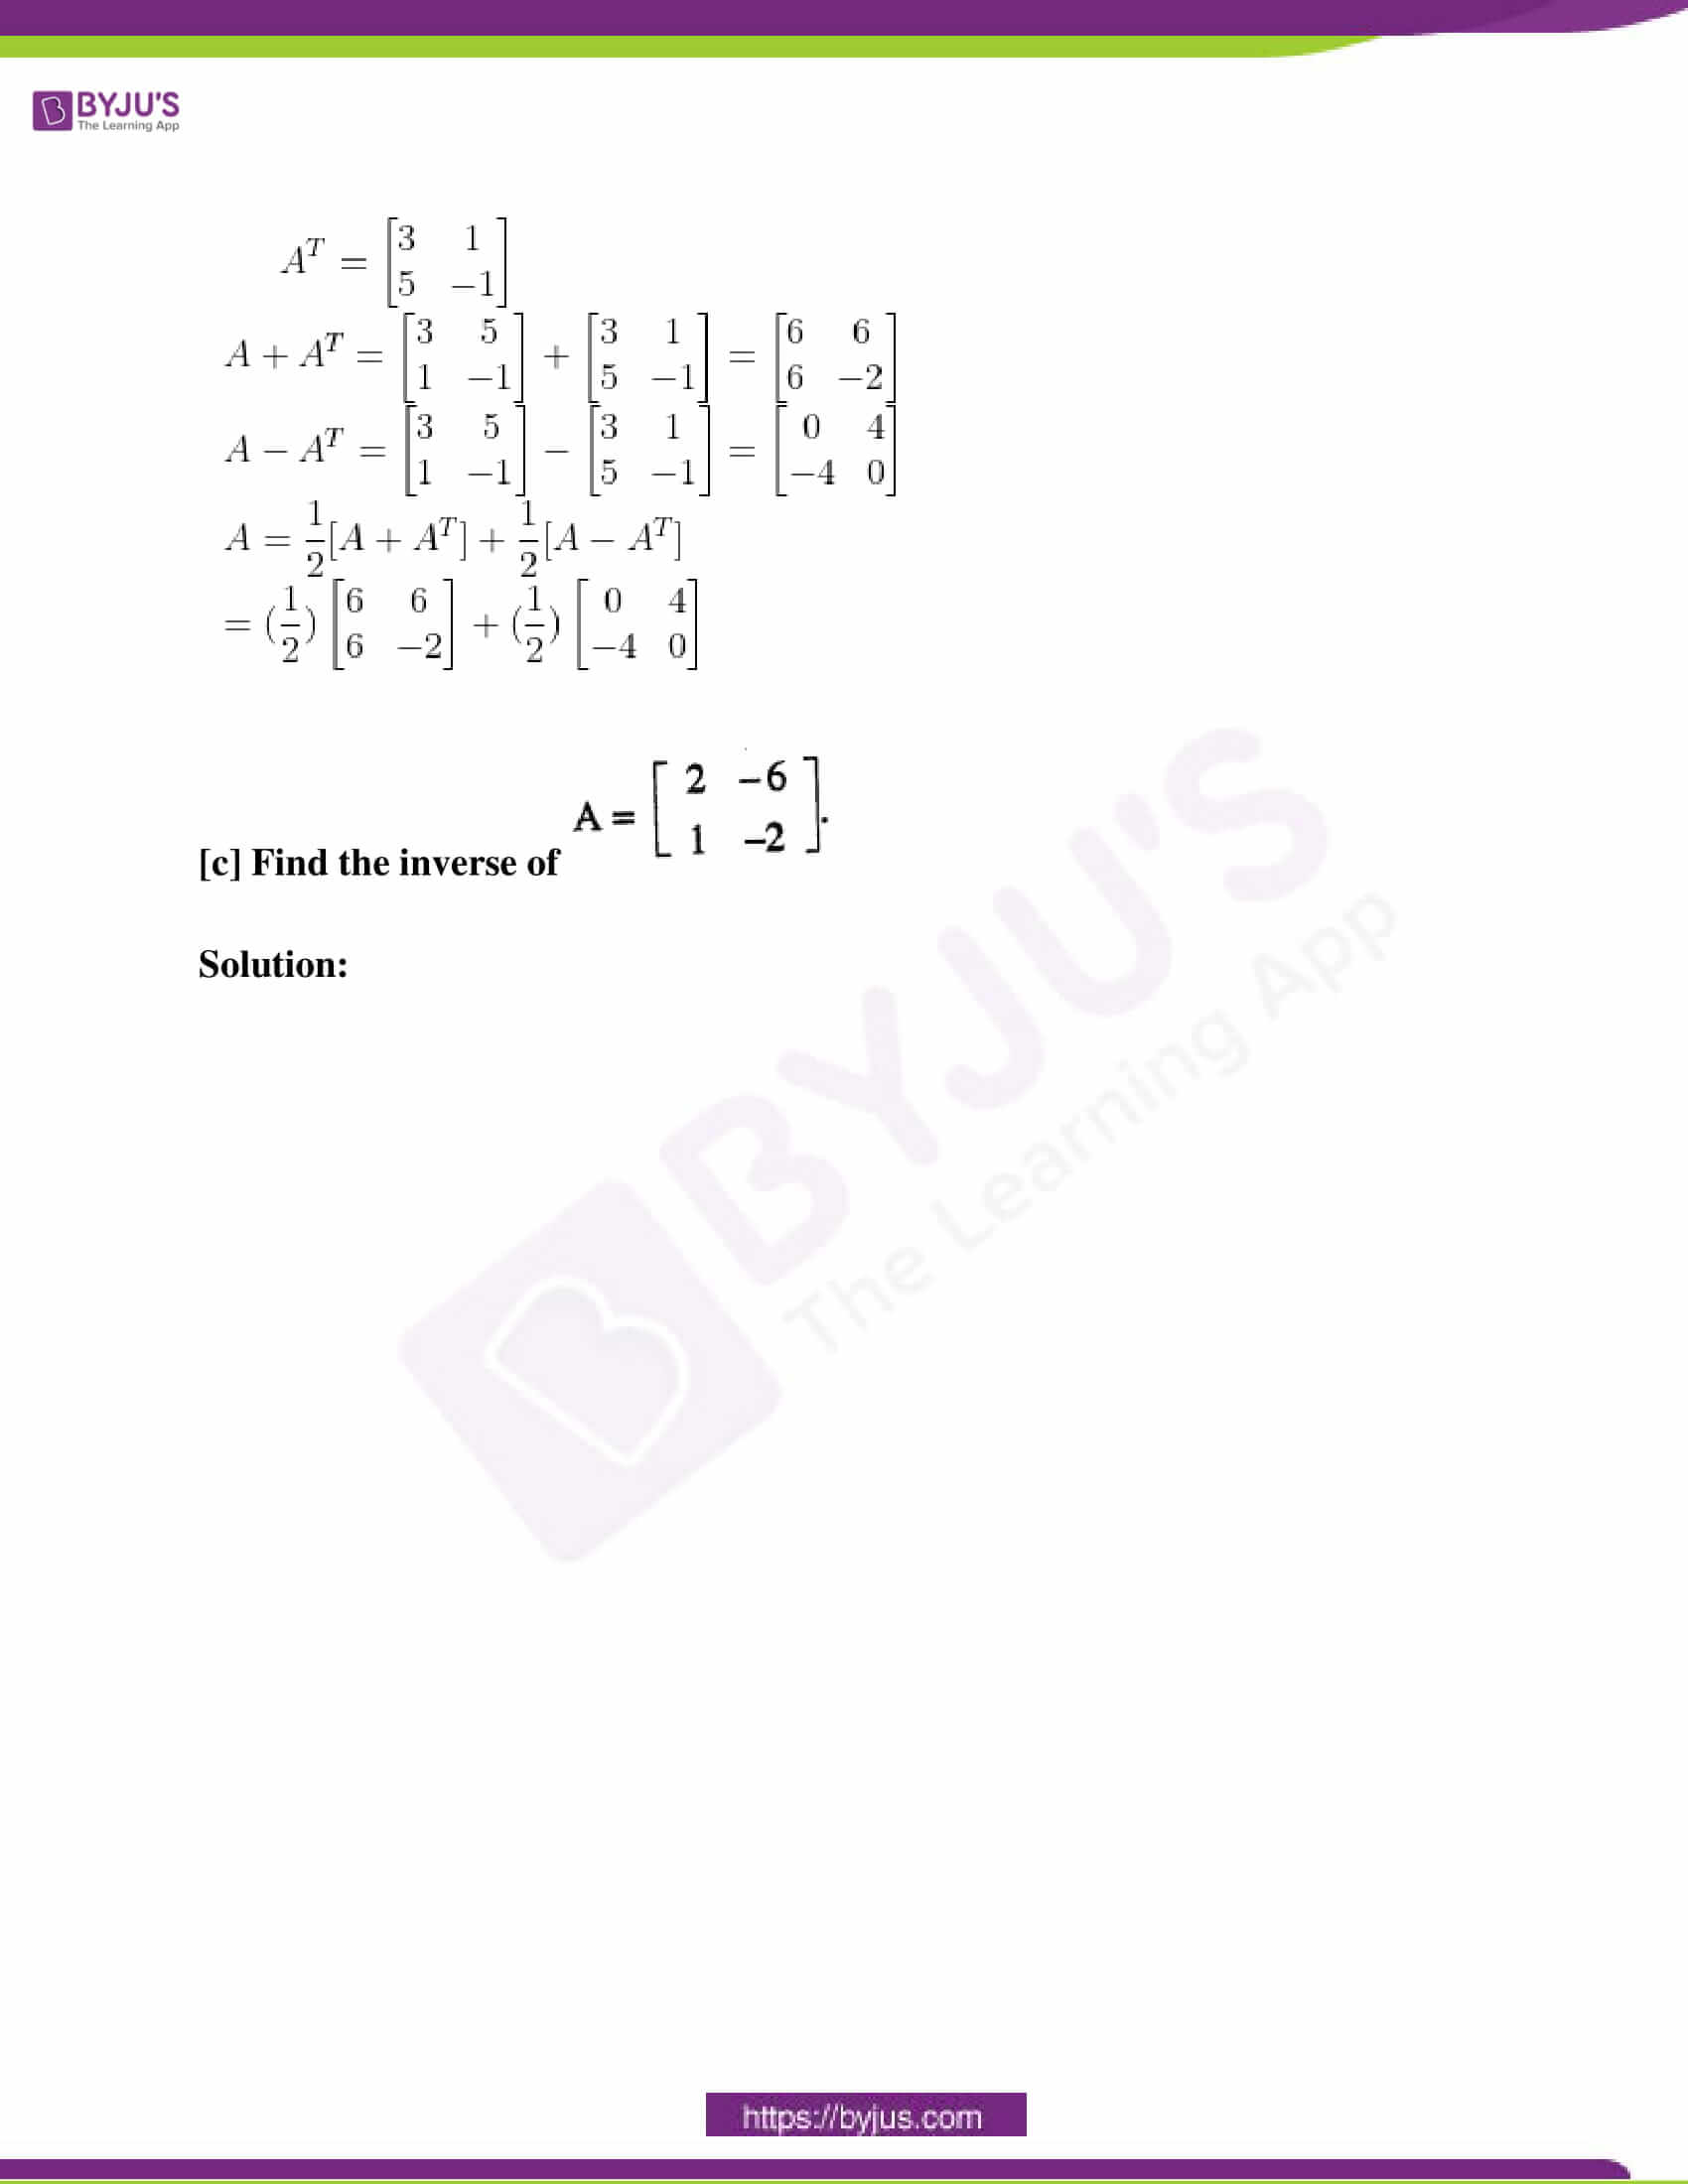 kerala class 12 examination question paper solutions march 2016 03